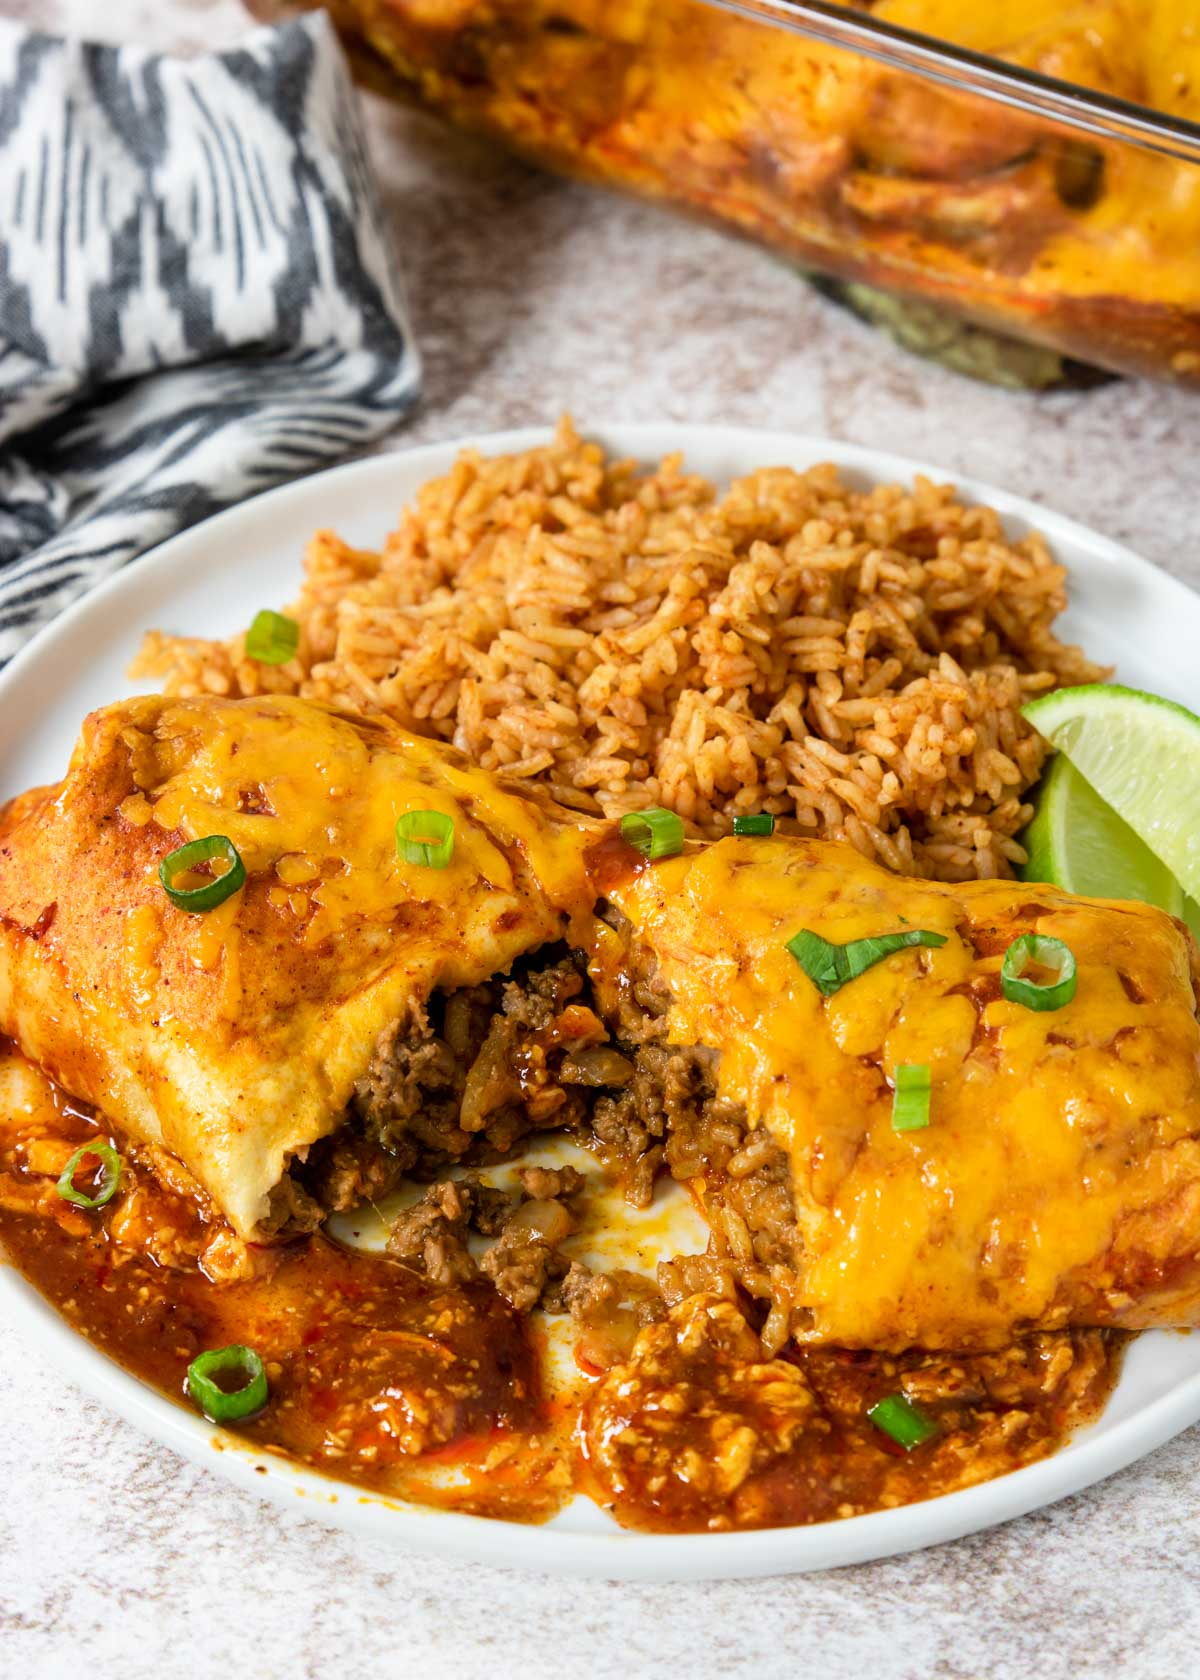 burrito cut in half with beans, rice and meat